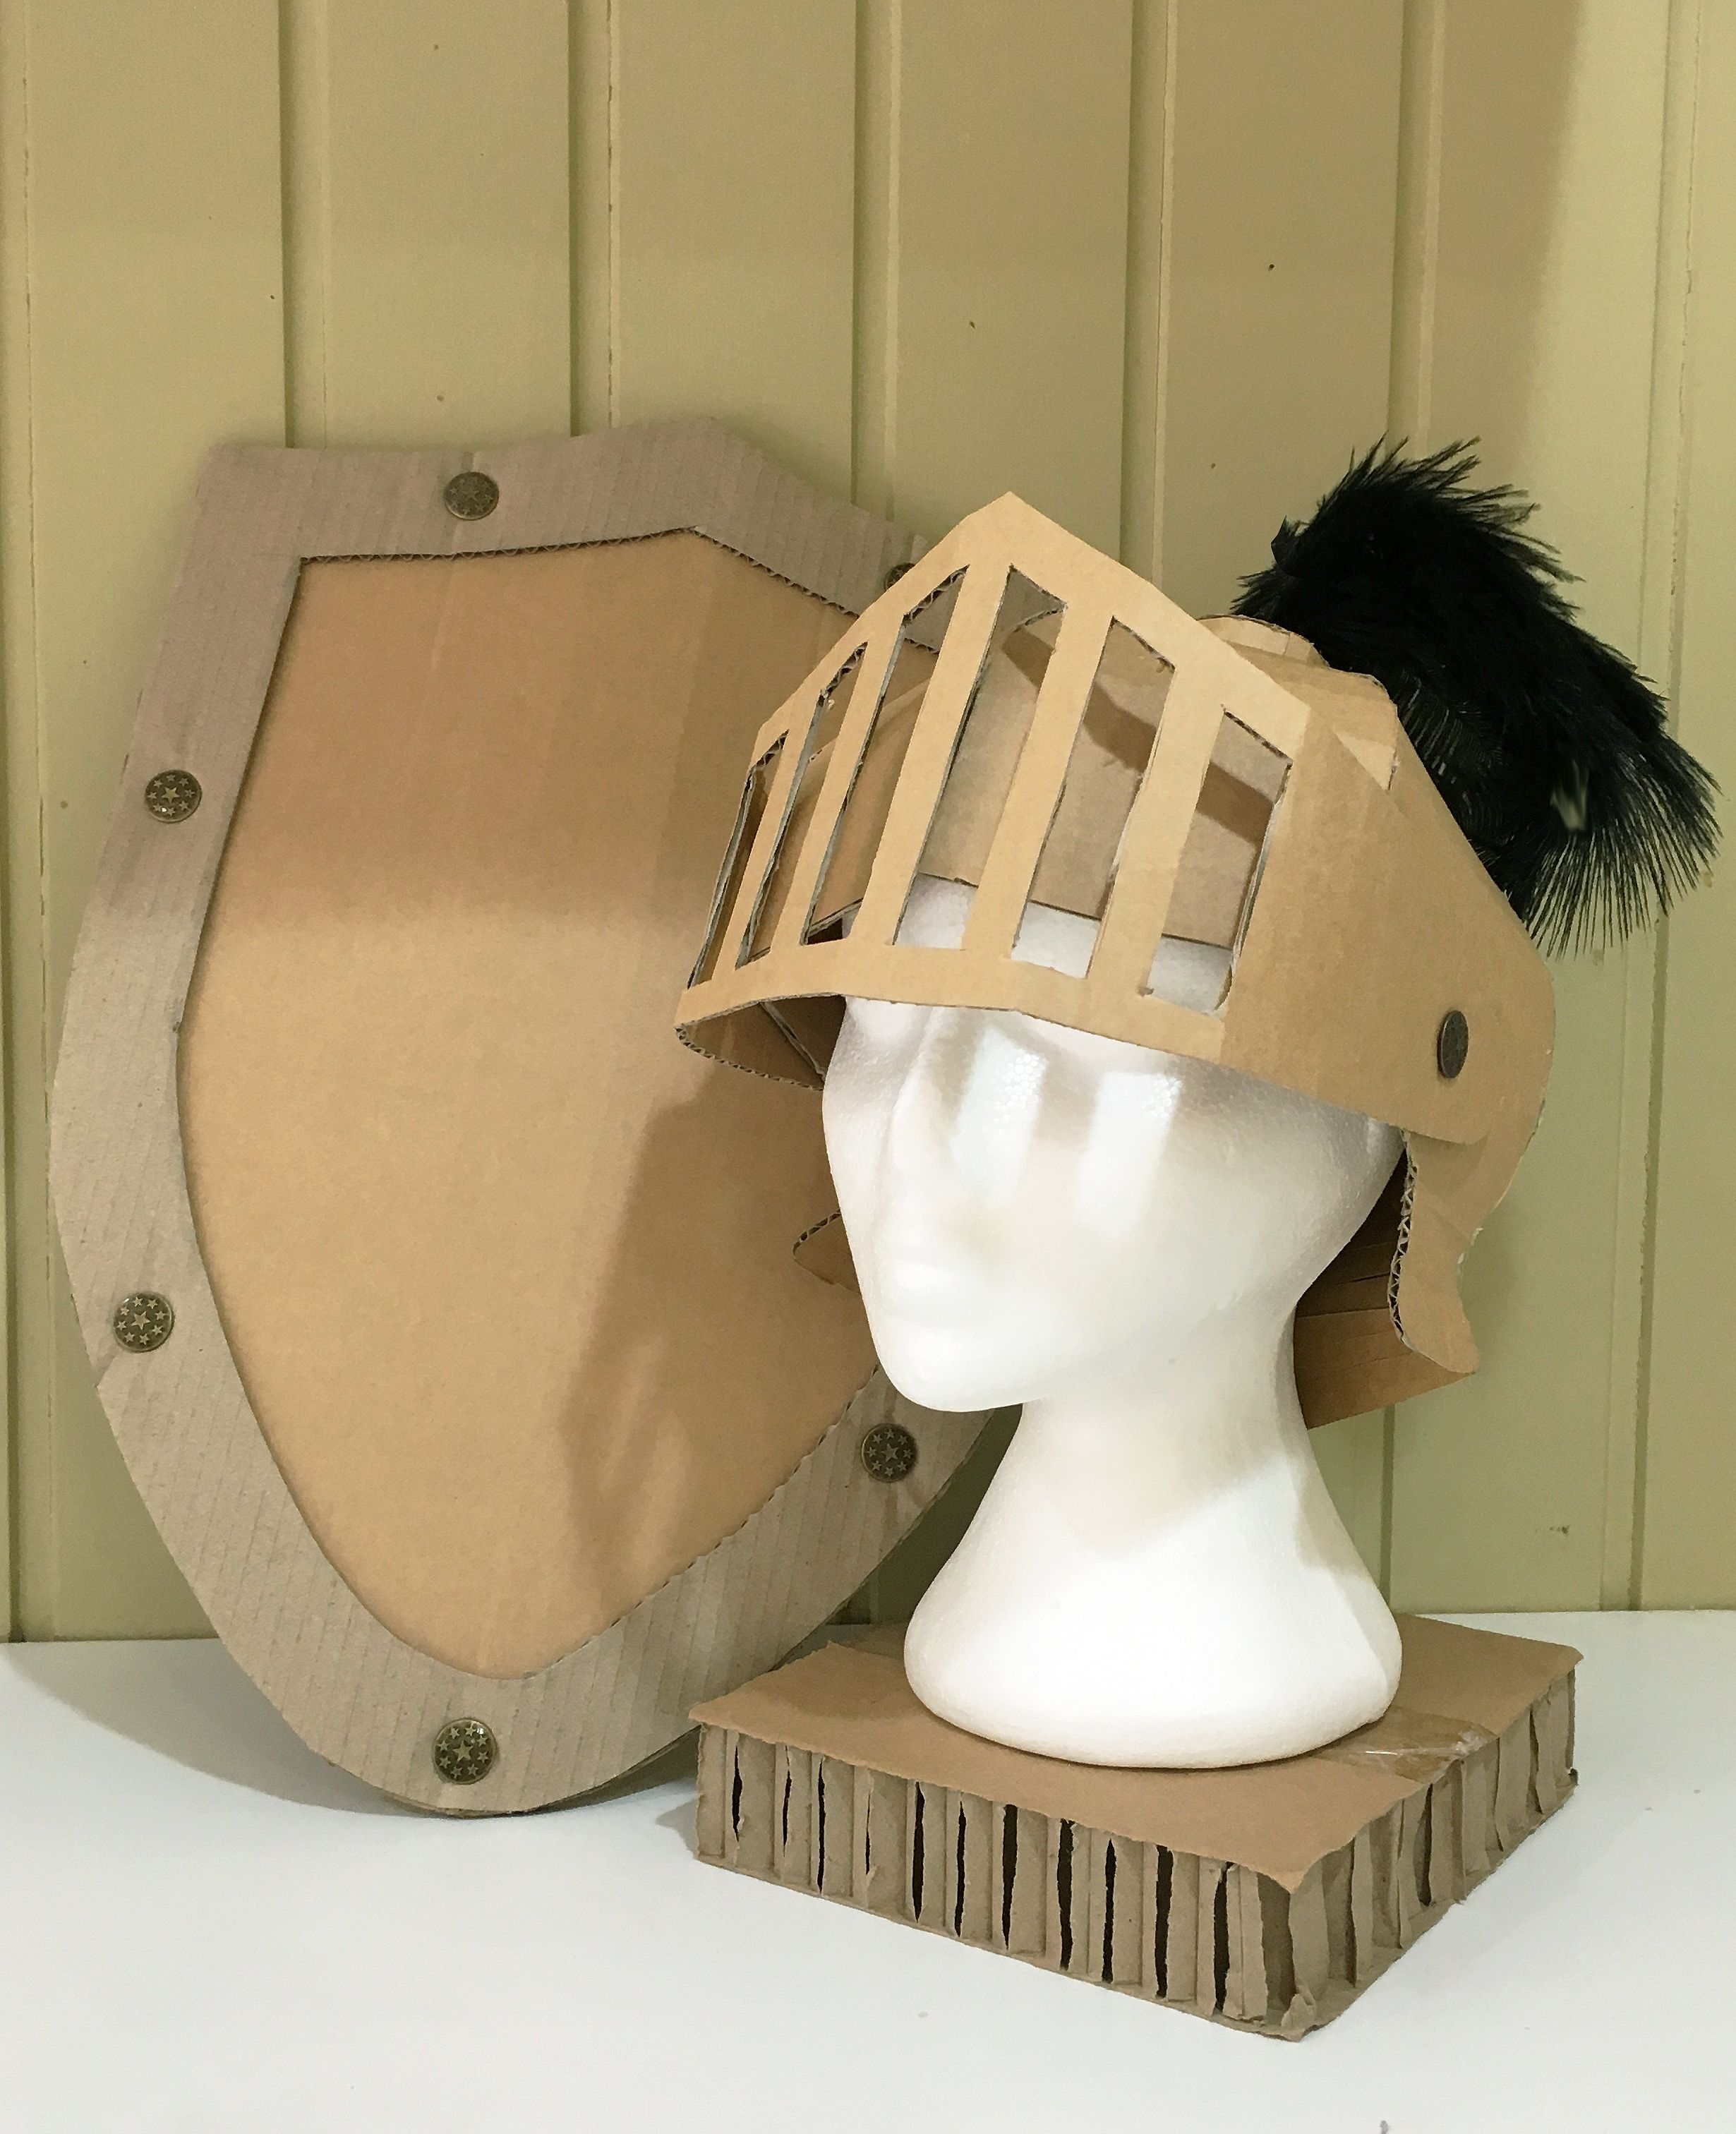 DIY Cardboard Knights Helmet Template By Zygote Brown Designs